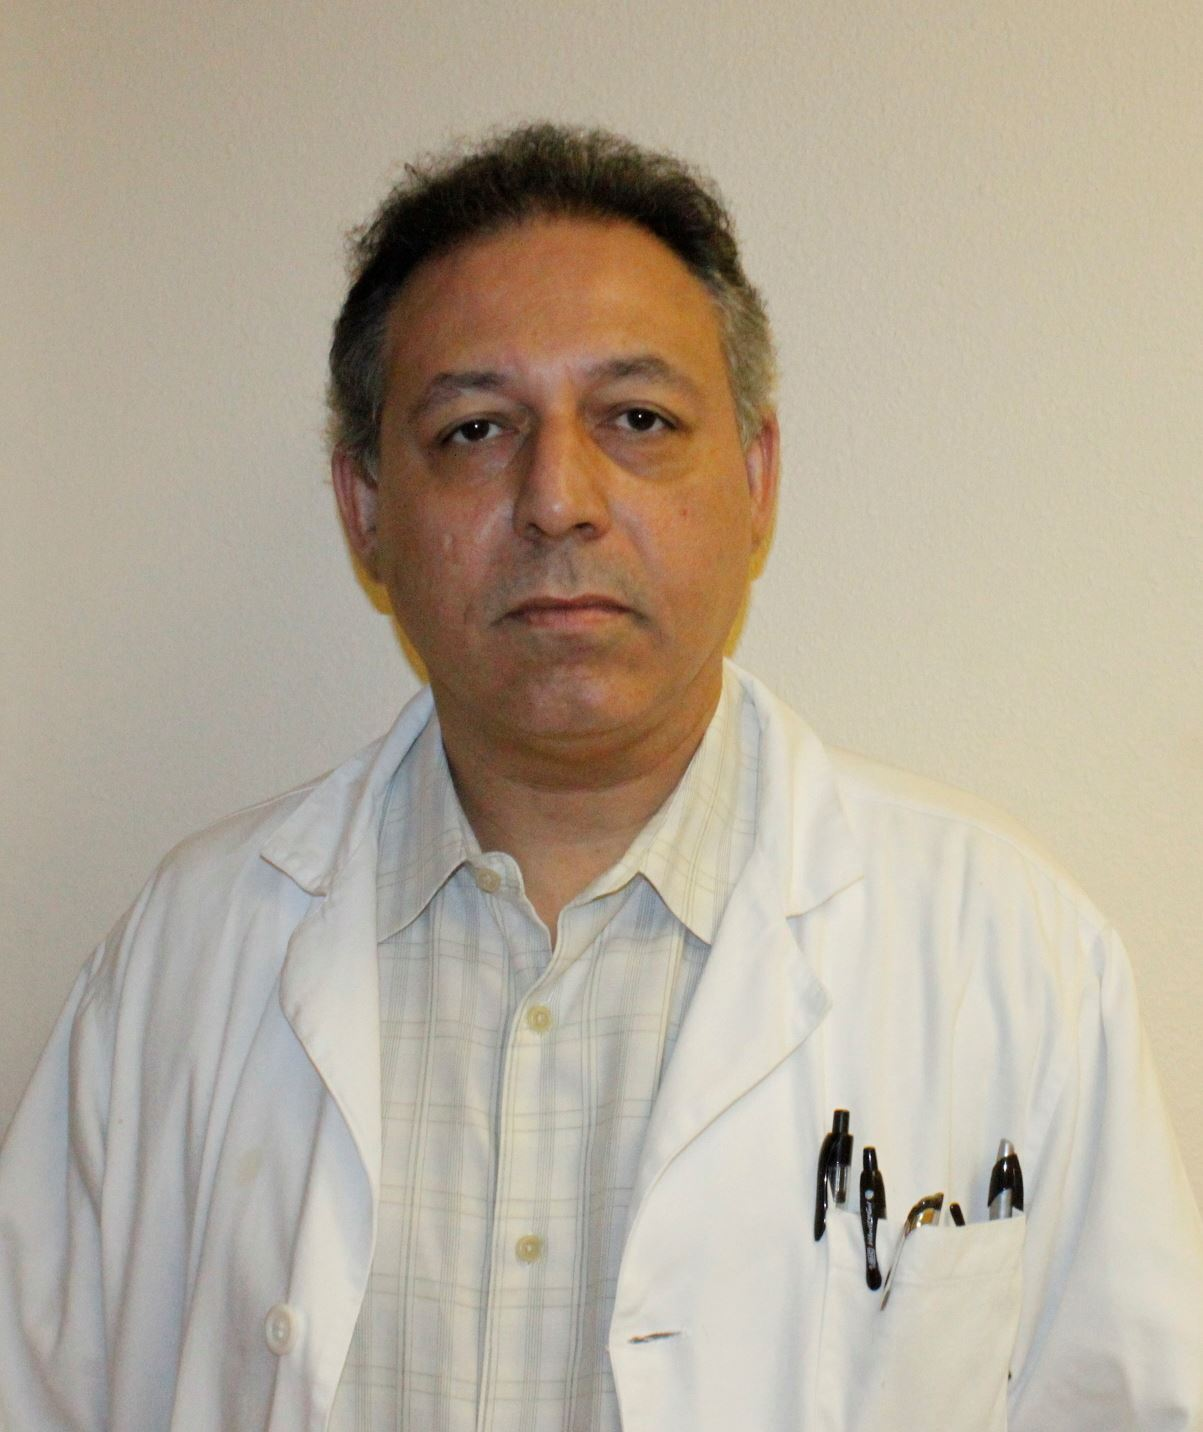 Cesar A. Martinez MD